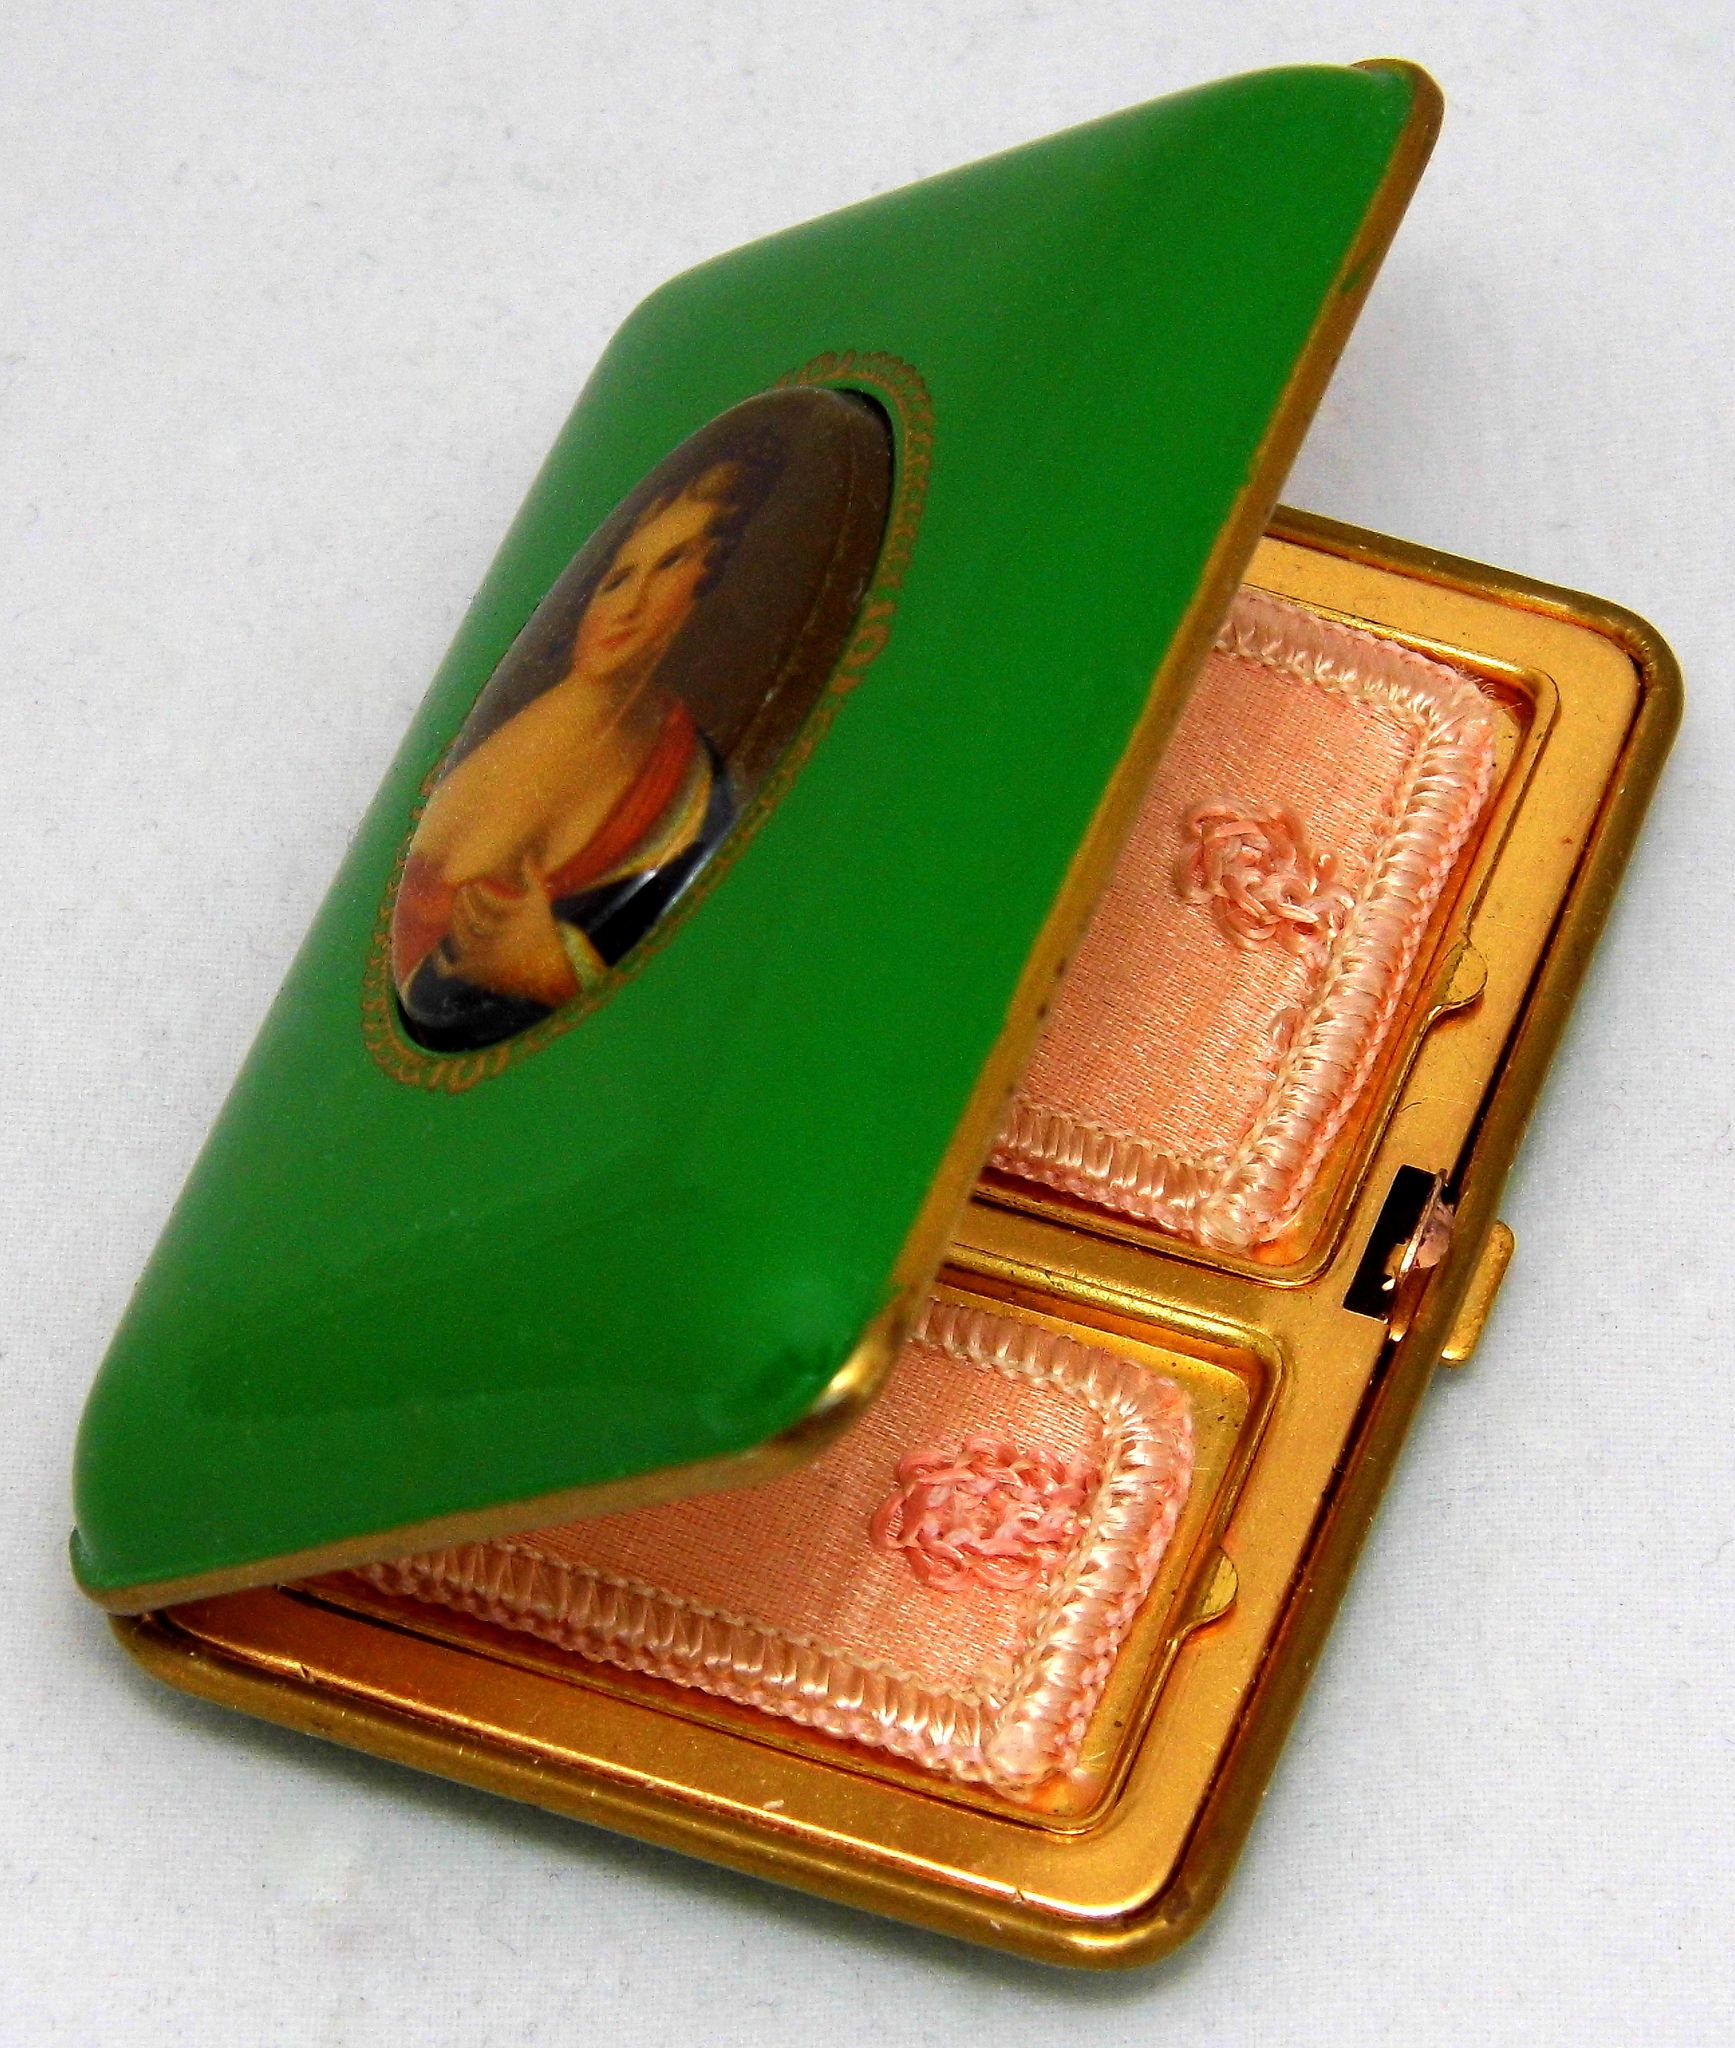 Vintage Women's Vanity Compact By Modern Cosmetics Company